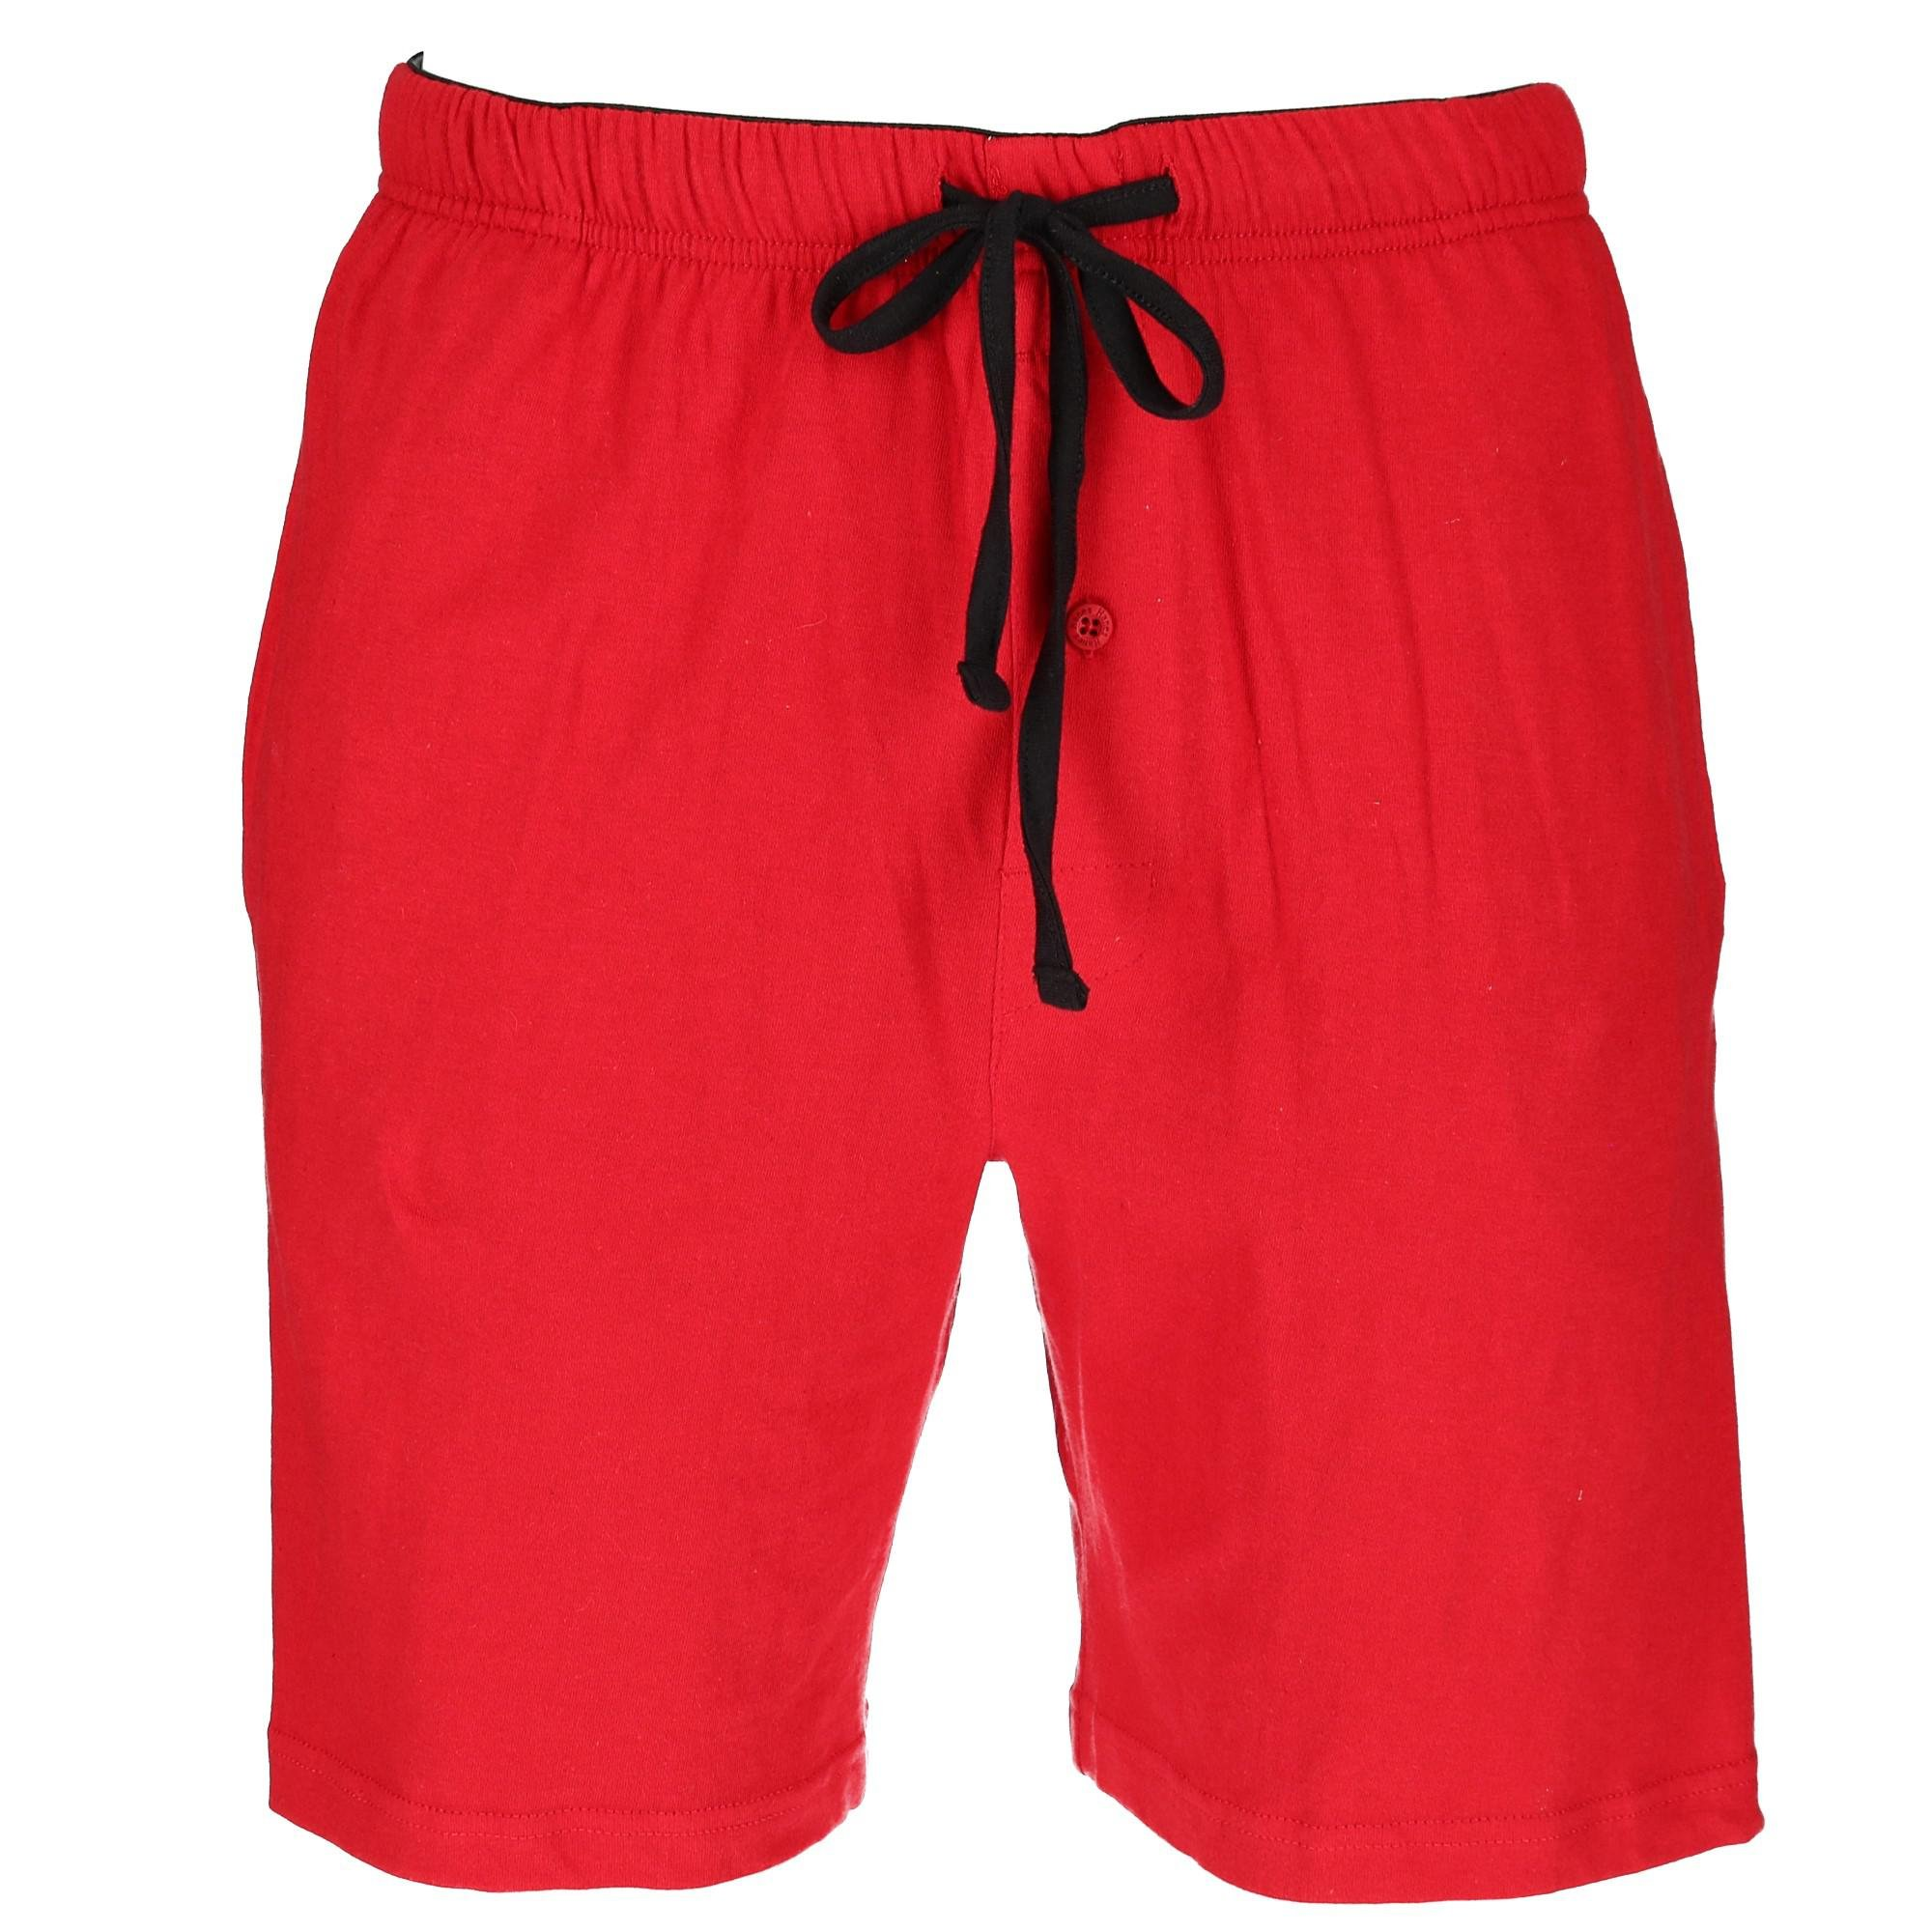 Hanes Men's Jersey Knit Cotton Button Fly Pajama Sleep Shorts, Large, Red